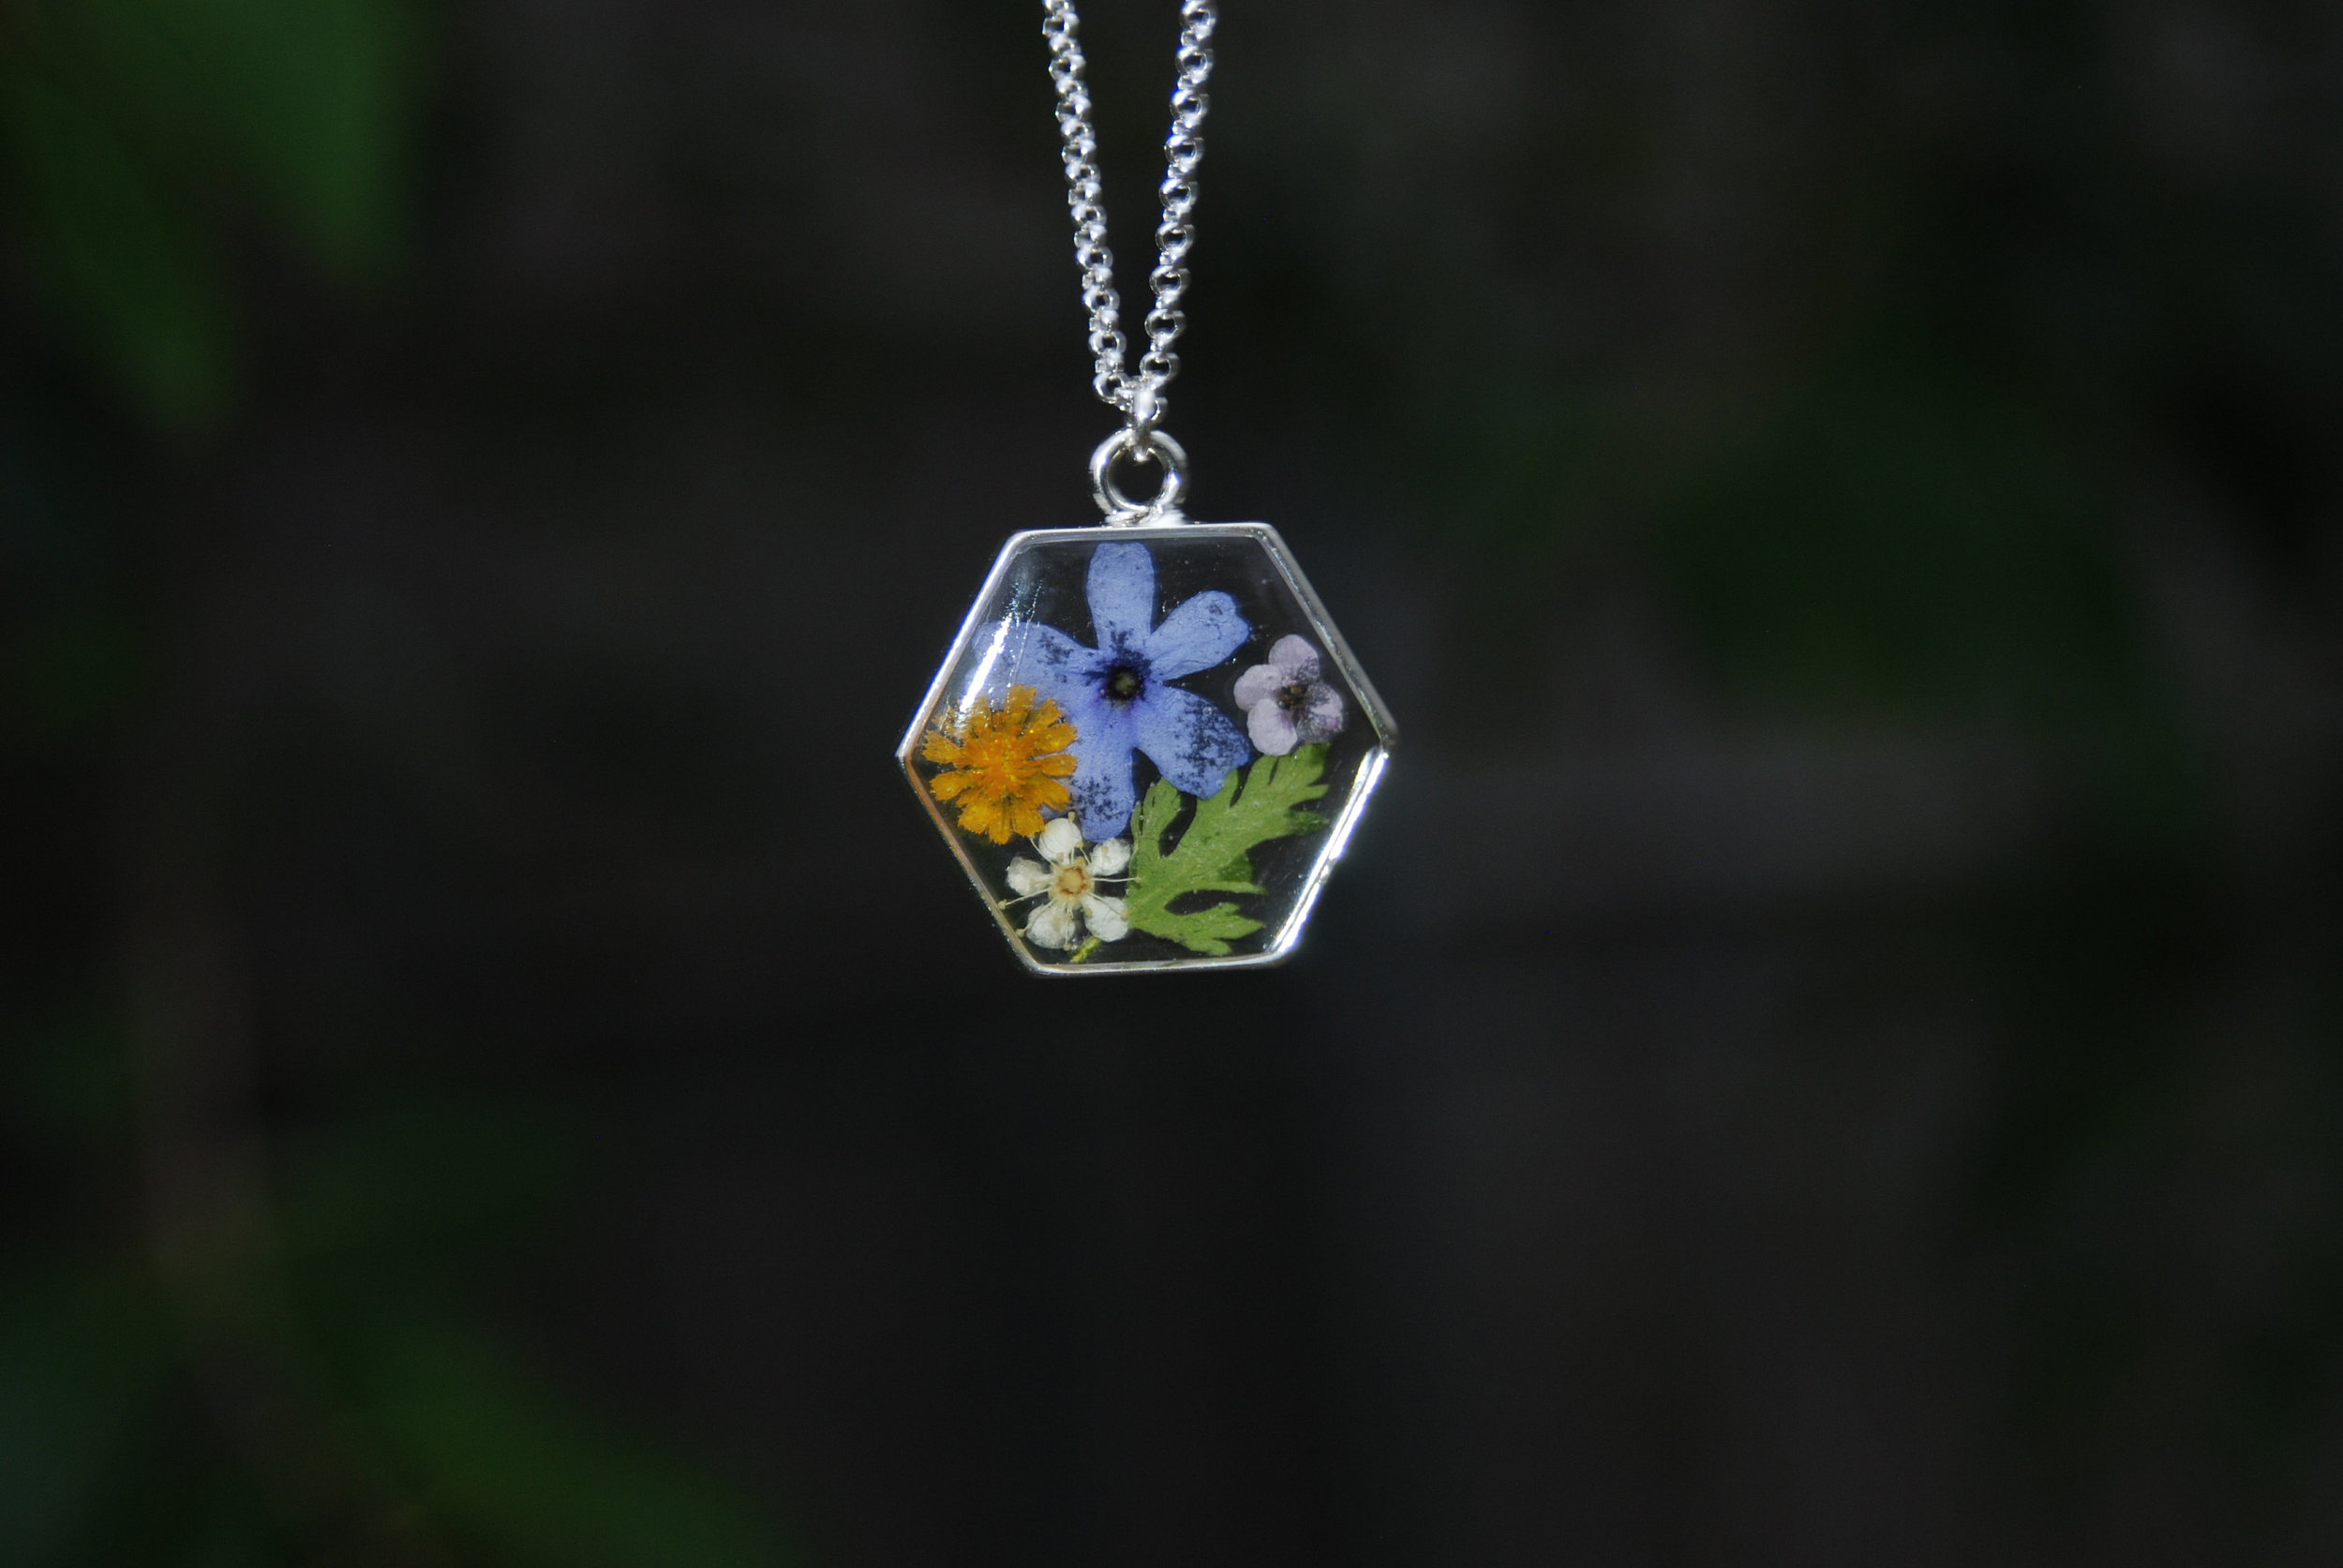 Dried Wild Flower Pendant Necklace - Gnome Stones